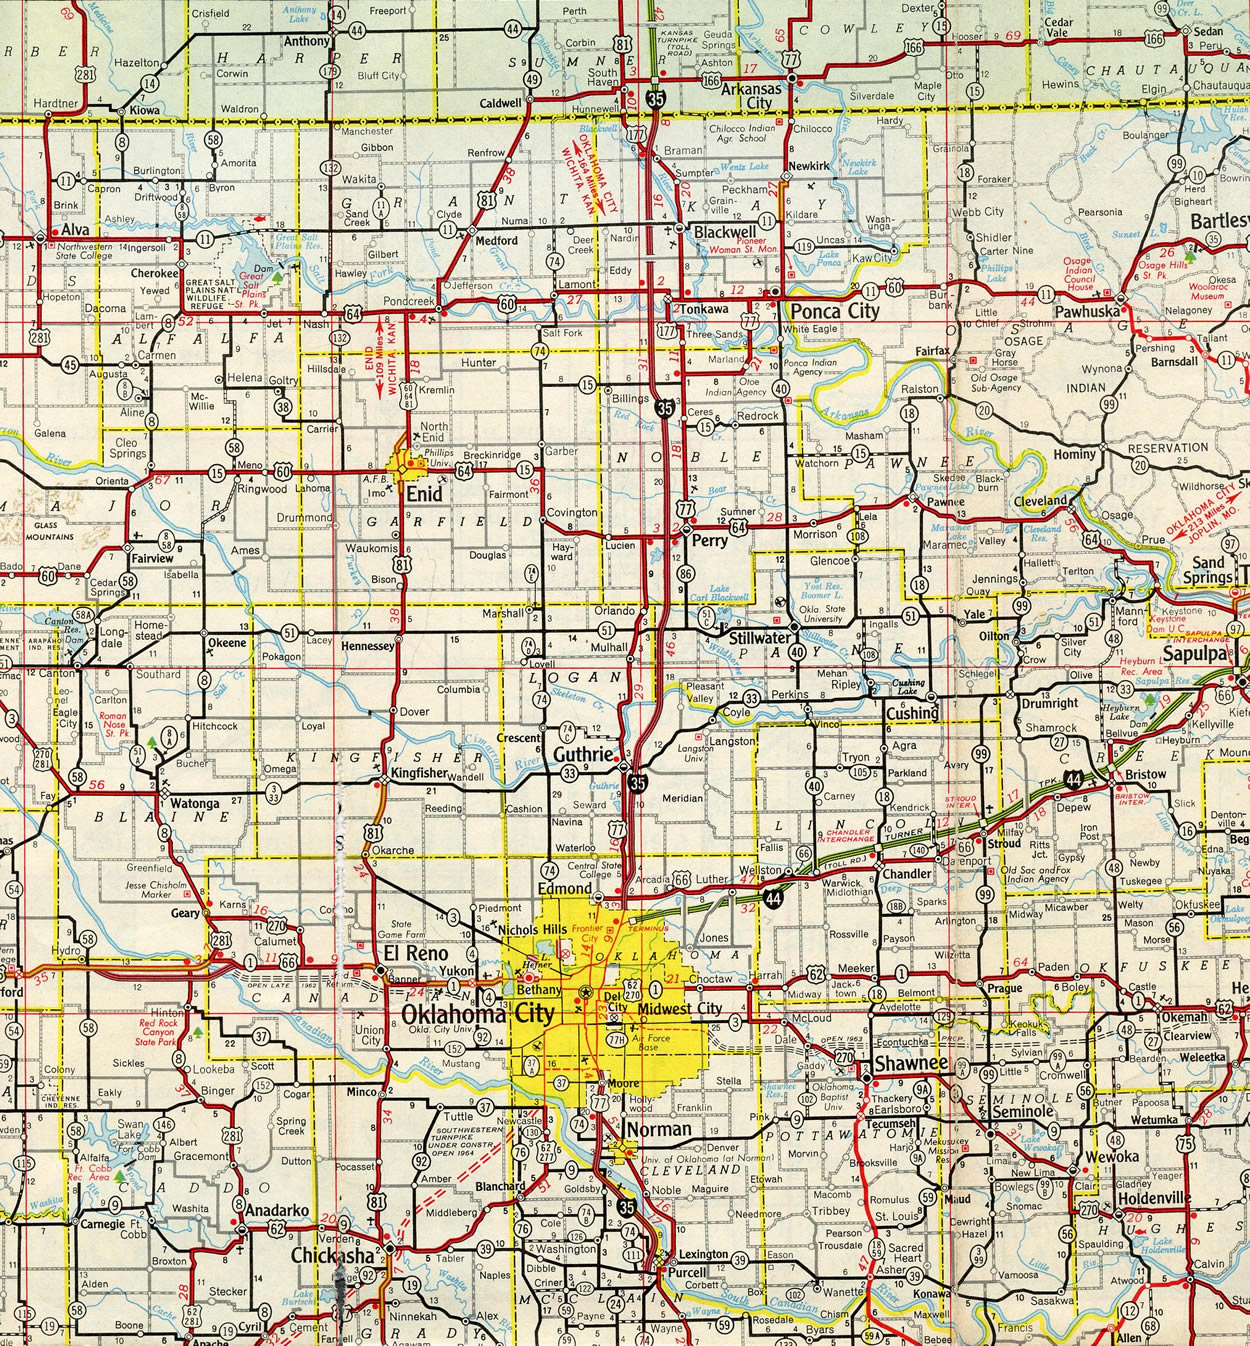 Interstate 35 - Interstate-Guide.com on kansas state physical map, map of kansas and oklahoma, kansas soil maps, missouri pacific railroad map oklahoma,